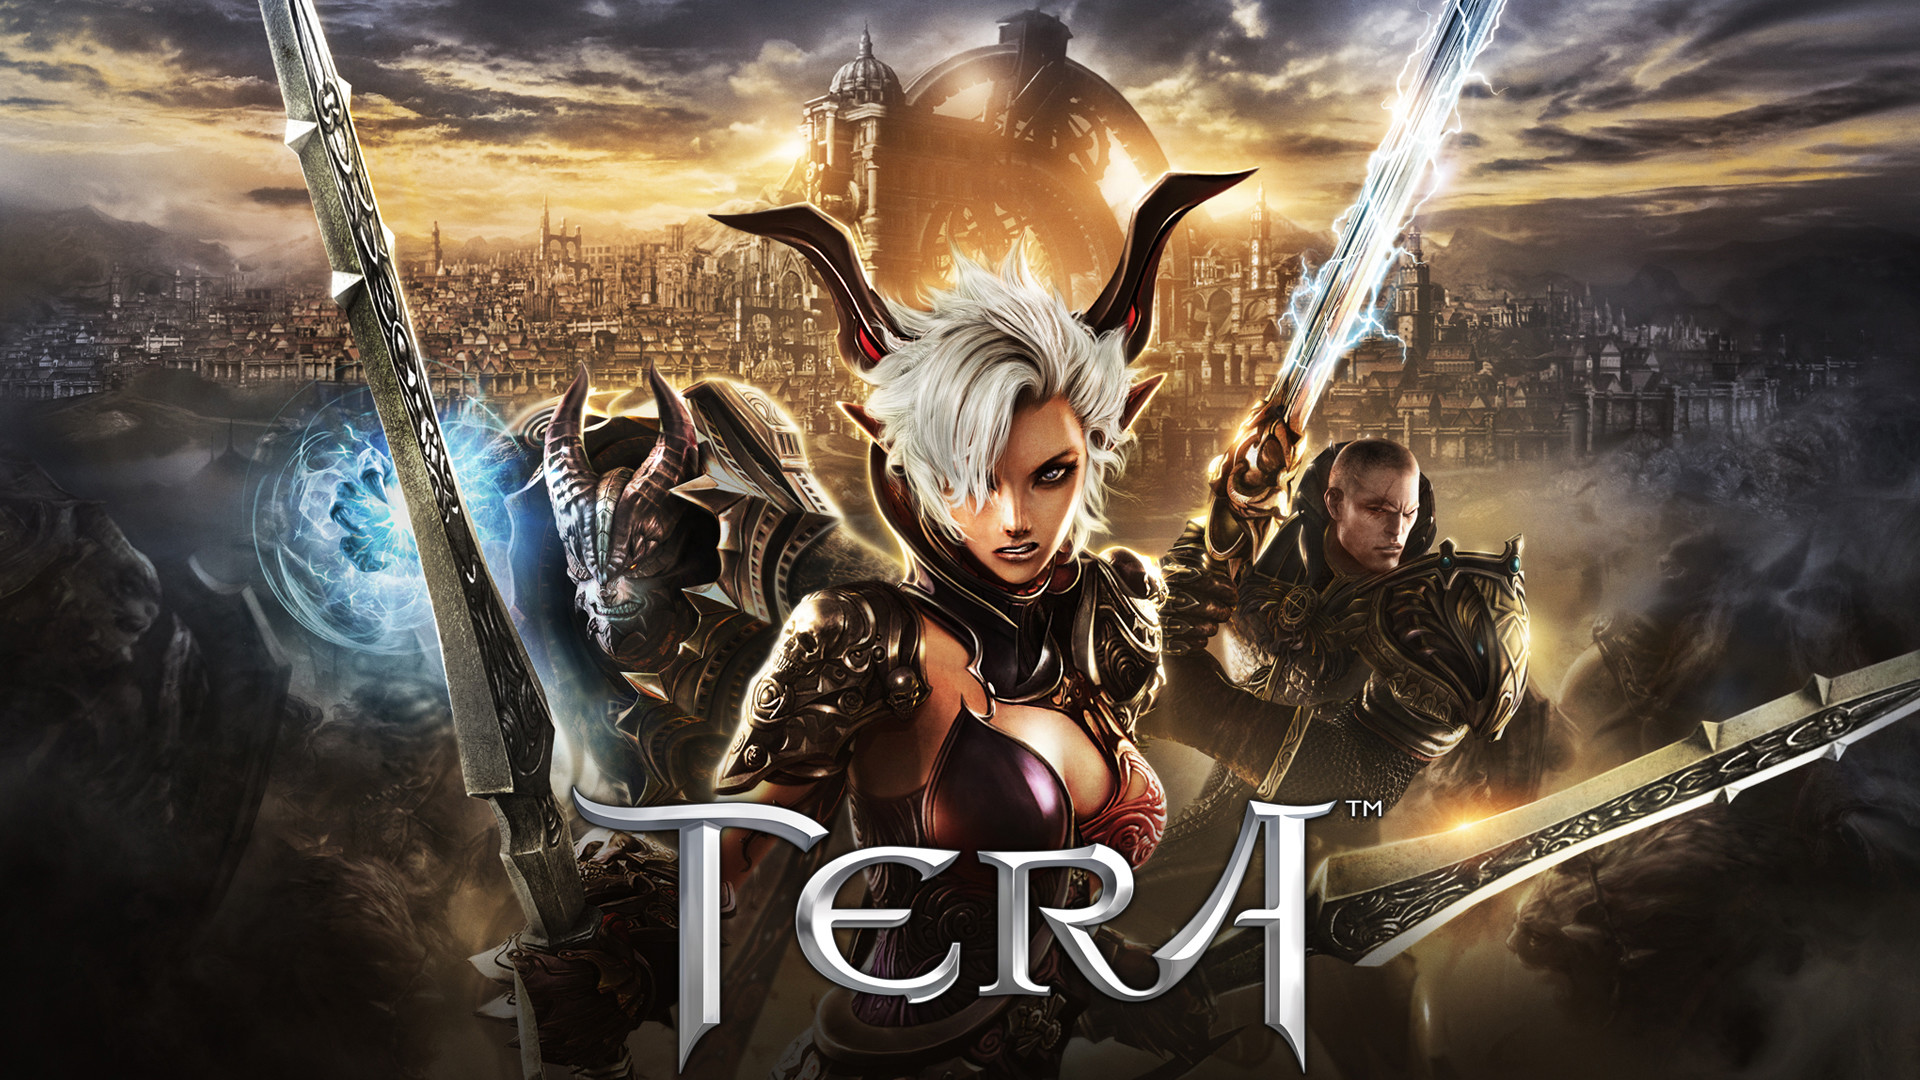 Tera Online – PC Tera is the first true action MMORPG. Tera provides all  the depth of any MMO–quests, crafting, an intricate plot, PvP, and